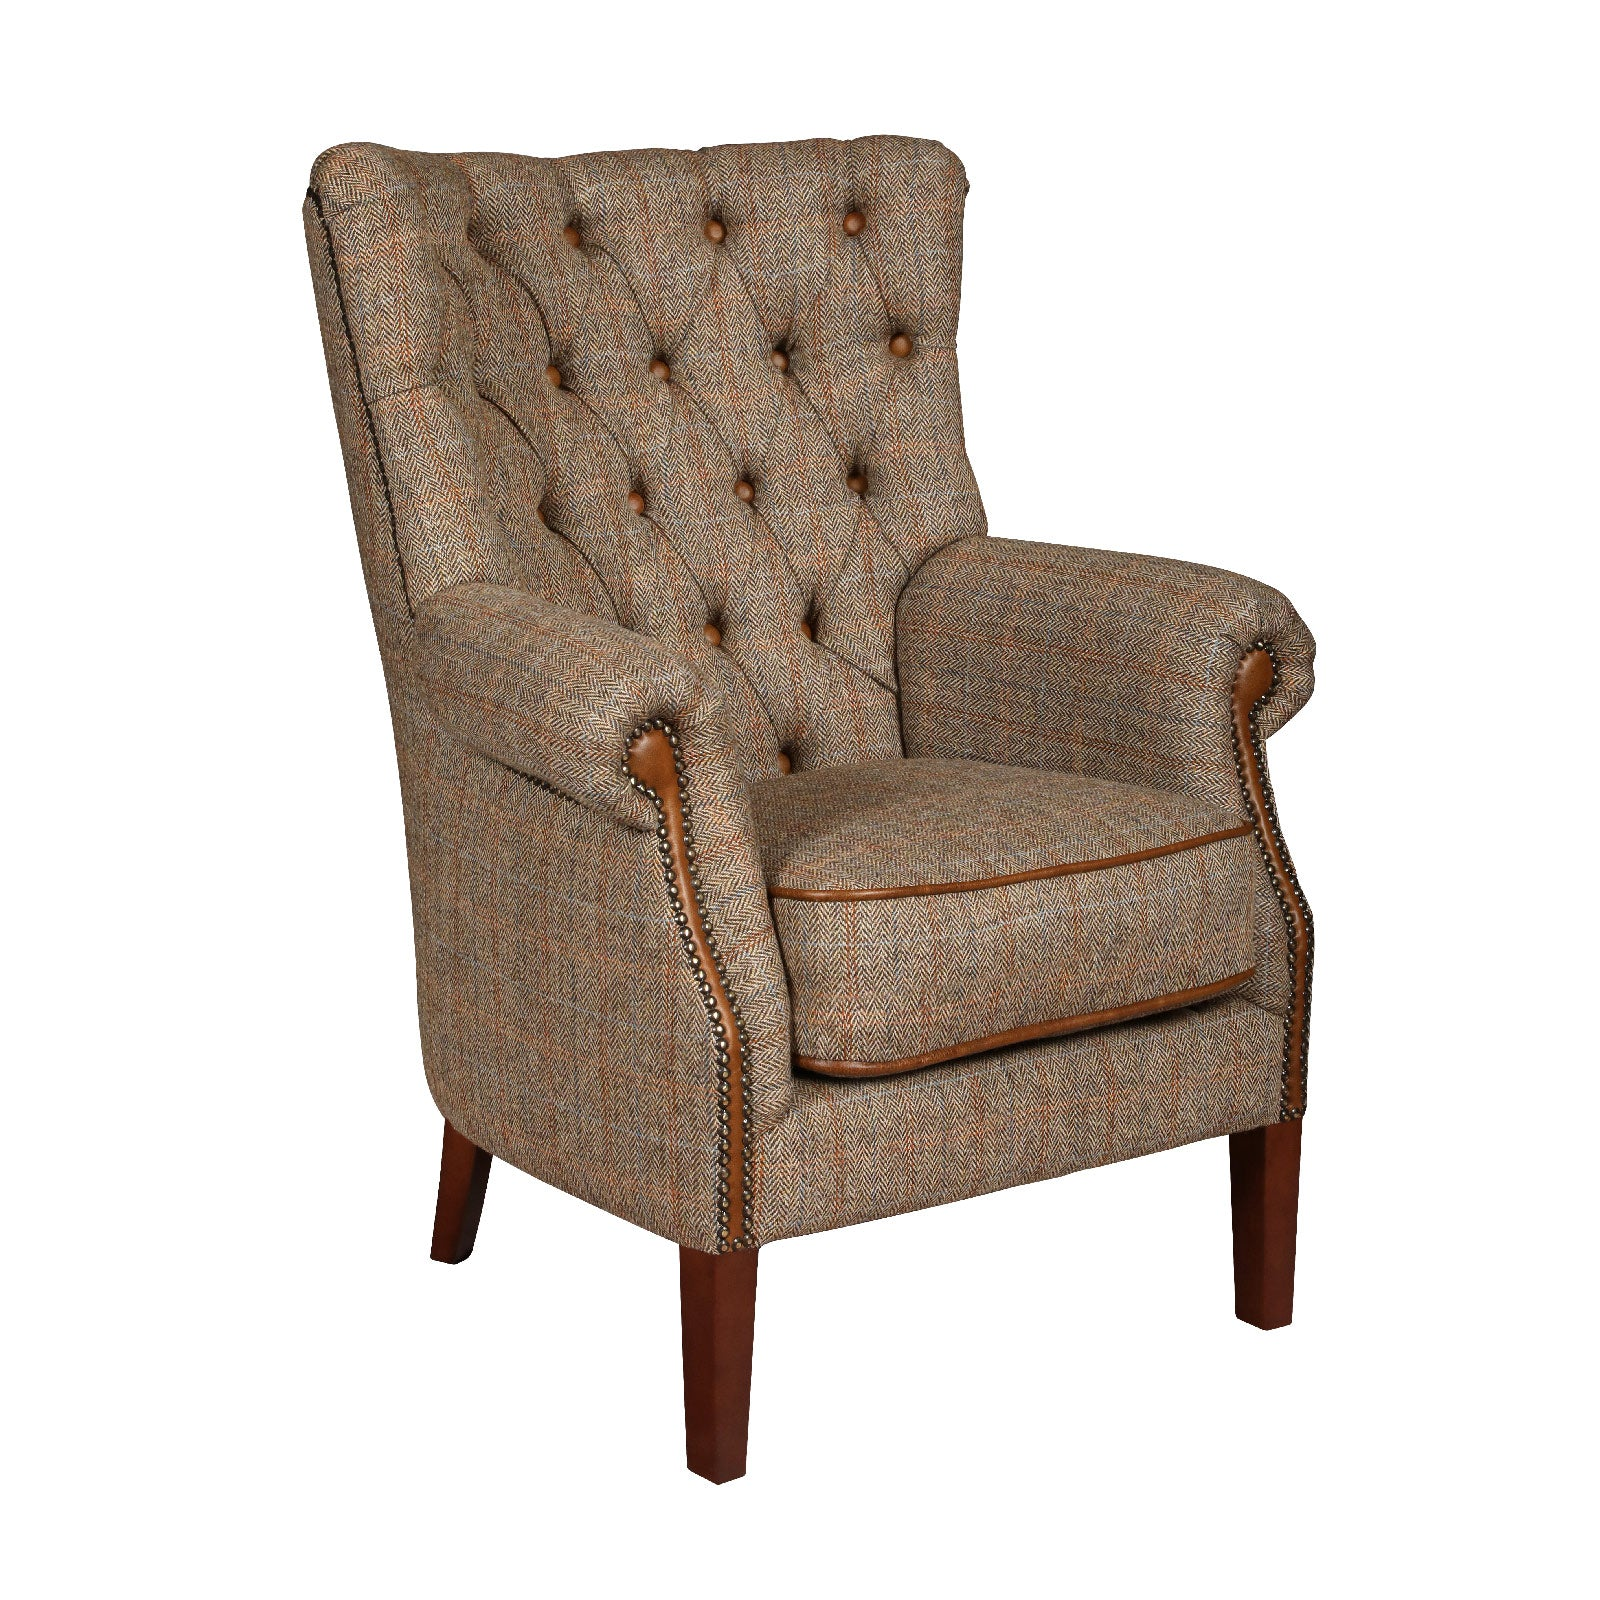 Hexham Harris Tweed and Leather Sofa and Chair.-harris tweed sofas-Against The Grain Furniture-Chair-Against The Grain Furniture